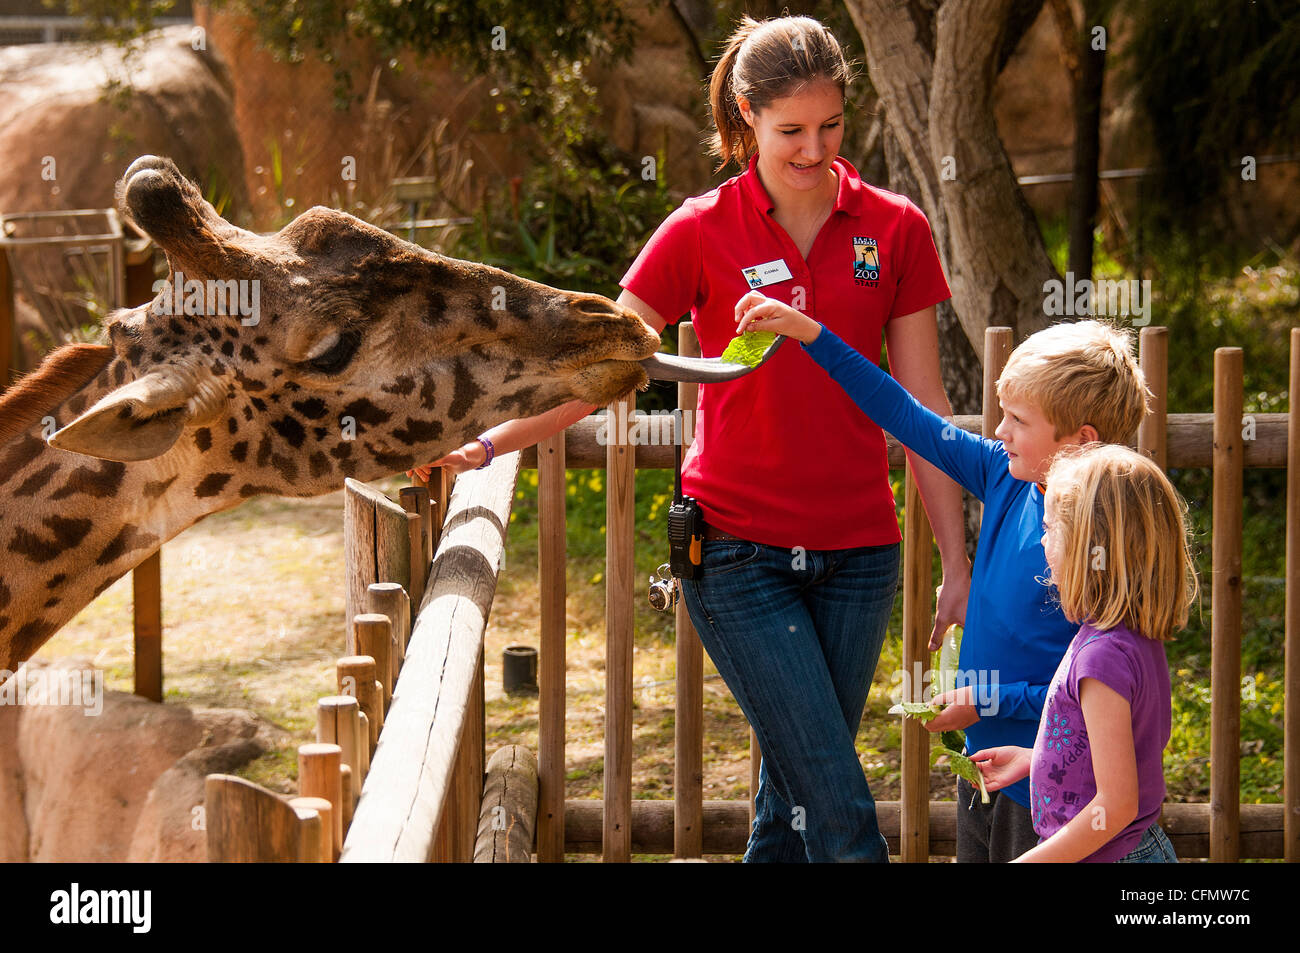 Children feed giraffe at Santa Barbara Zoo central California Coast USA - Stock Image